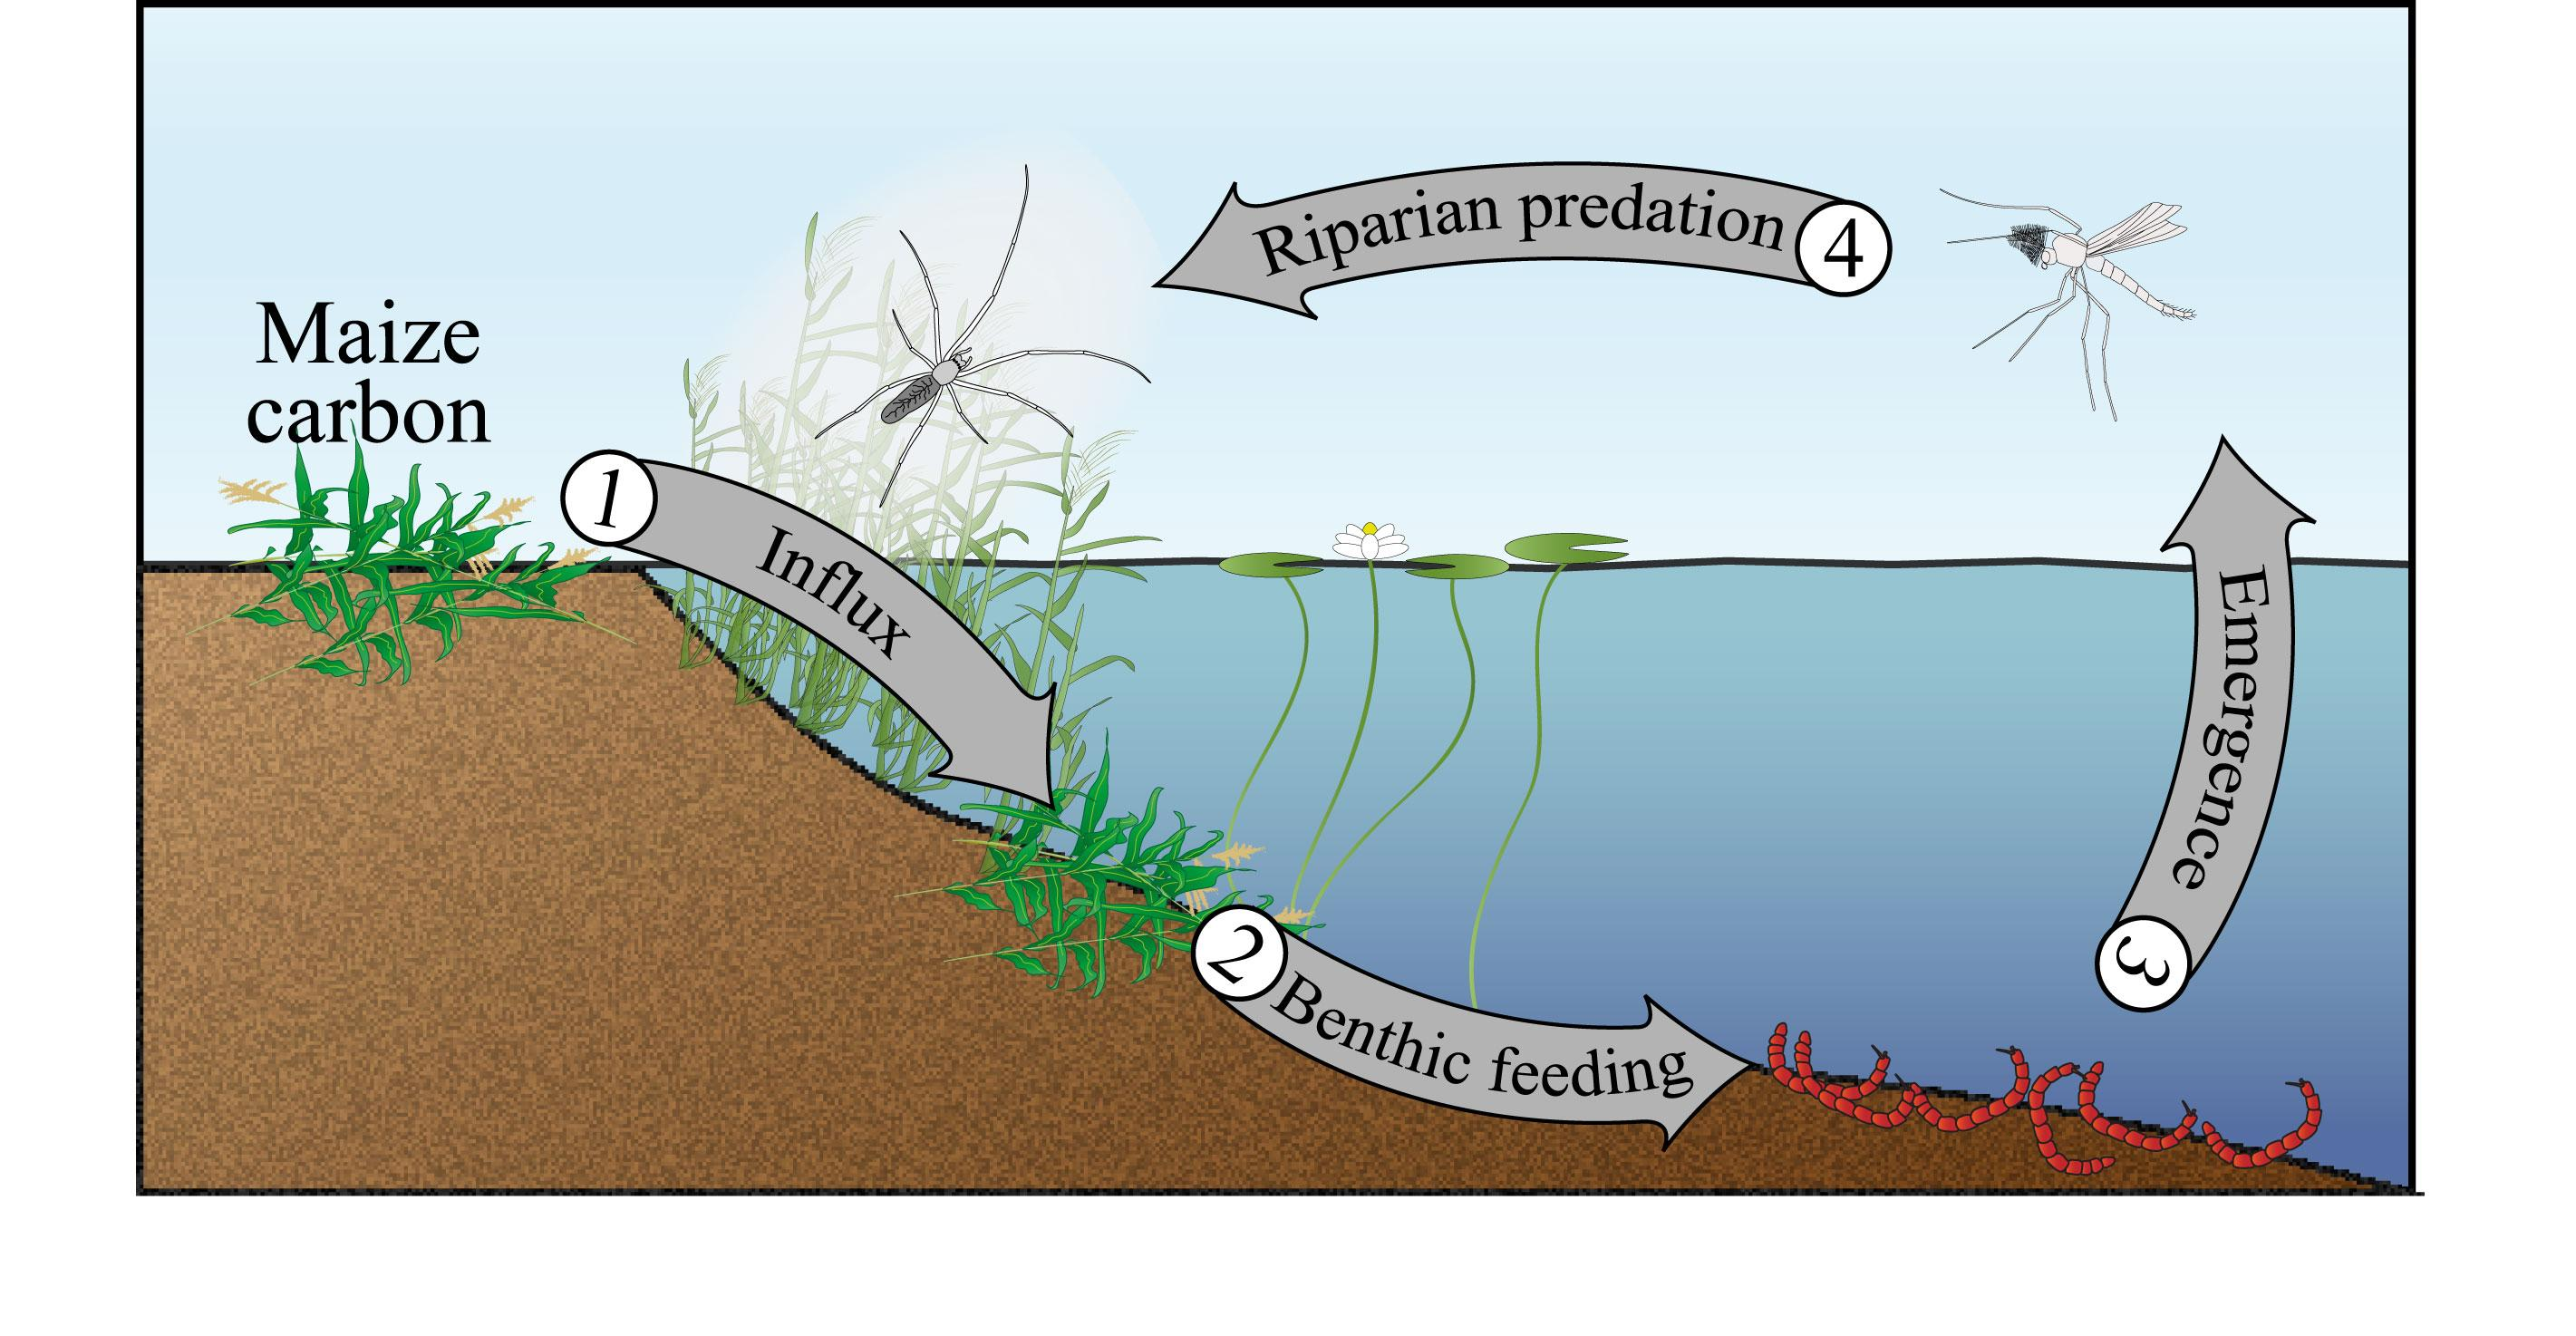 a freshwater aquatic and terrestrial food In rivers, as in the majority of other aquatic and terrestrial systems, the energy at the base of a food web comes from the solar energy fixed by plants (through photosynthesis) growing in the water or on land.